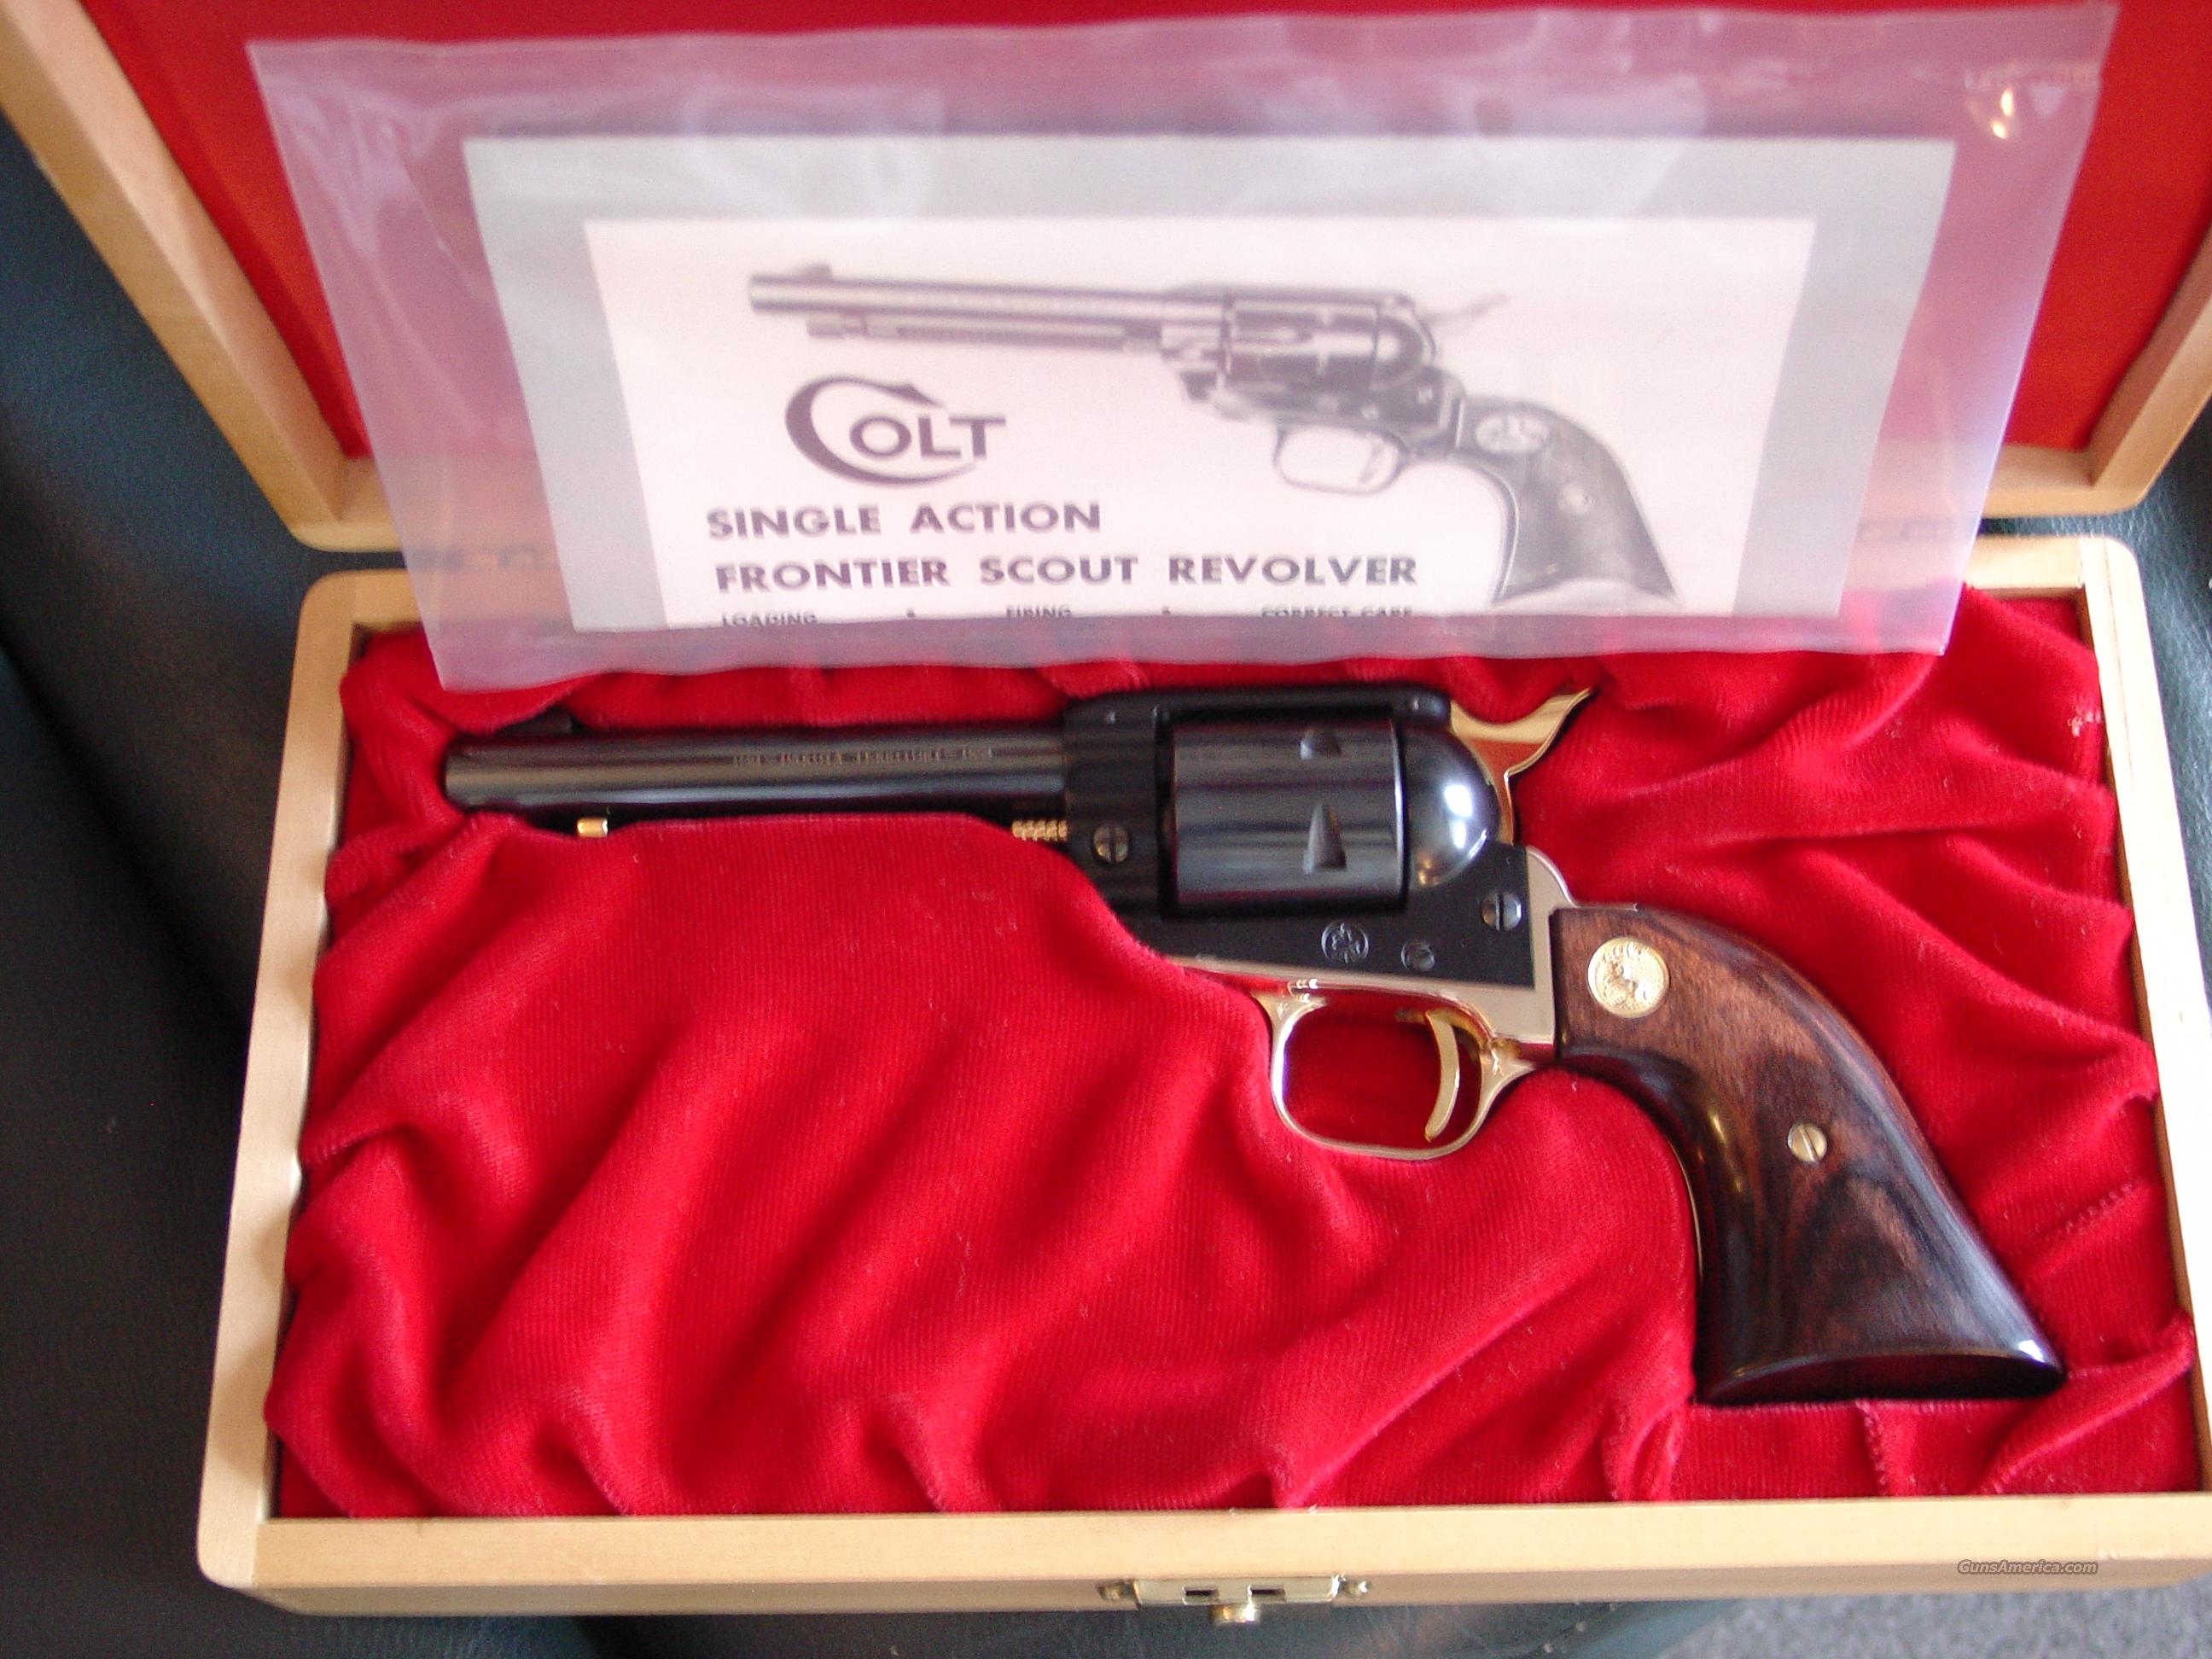 colt frontier scout 22lr dakota territory comme for sale rh gunsamerica com colt single action frontier scout 22lr manual Colt Frontier Scout Serial Numbers